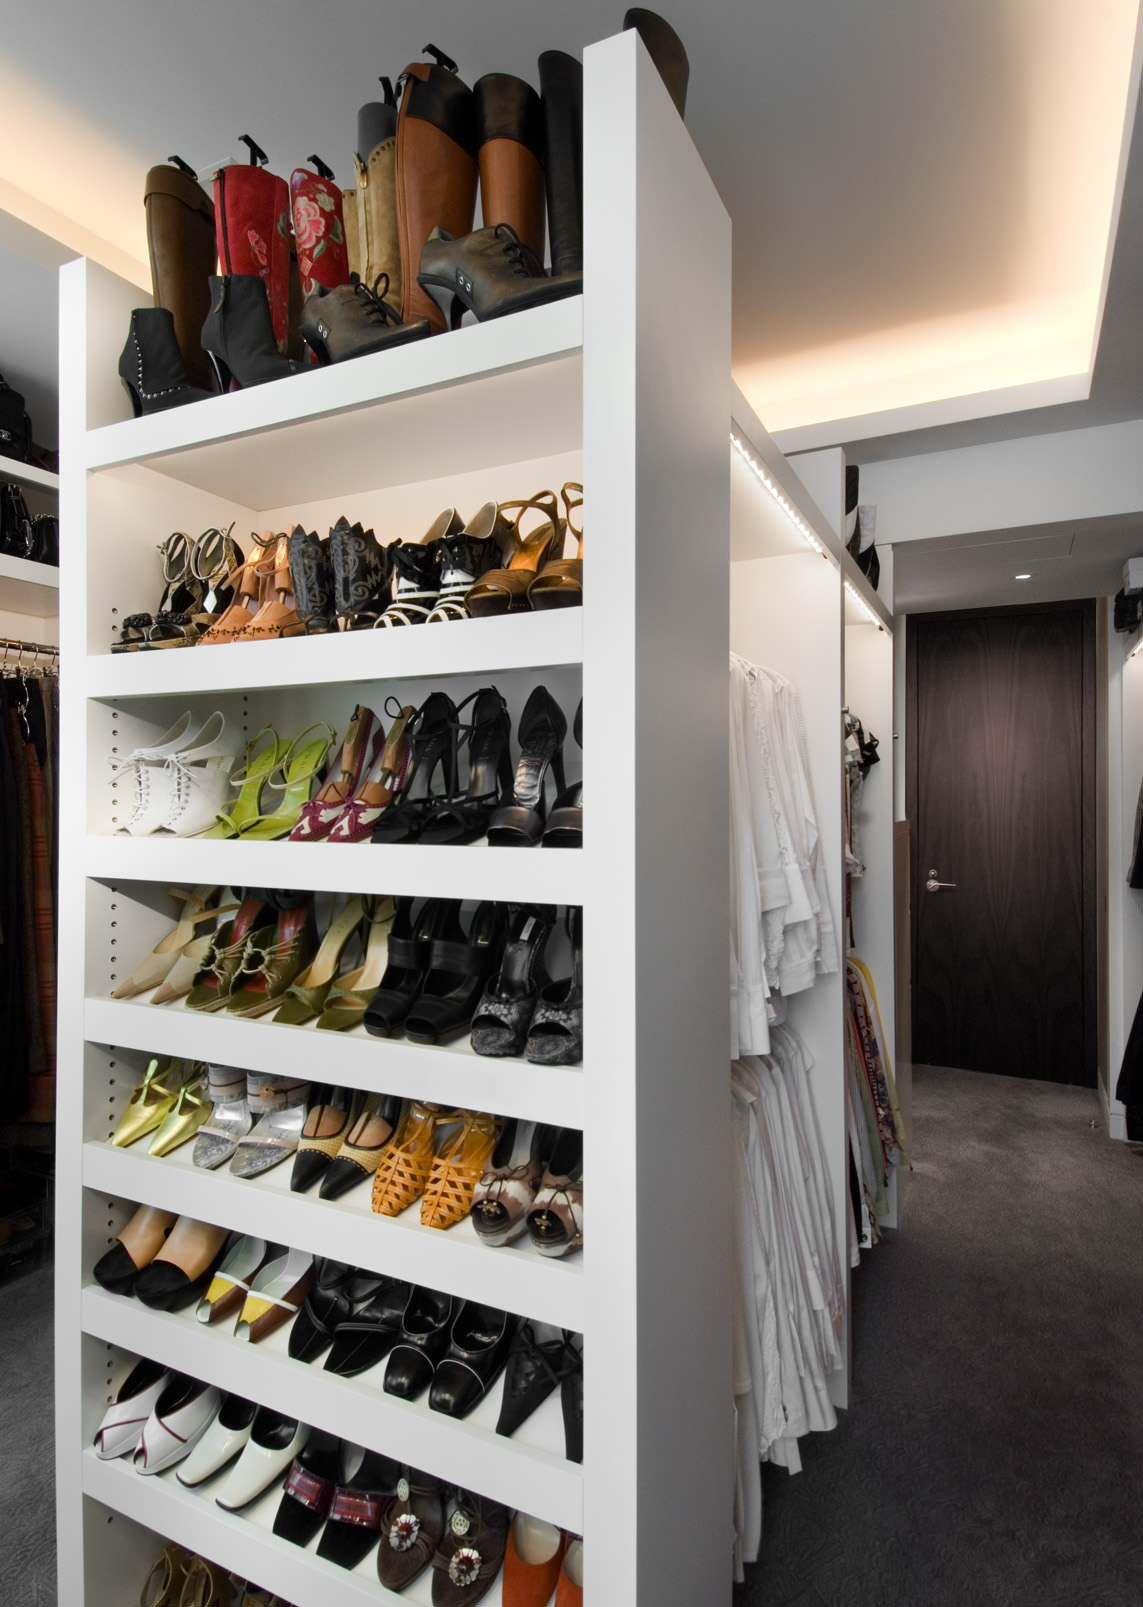 Inspiring Cove Lighting And Shoe Storage For Walk In Closet With Shoe Racks  For Closets Ideas Plus Tall Shelves Also Closet Lighting With Polish  Concrete ...